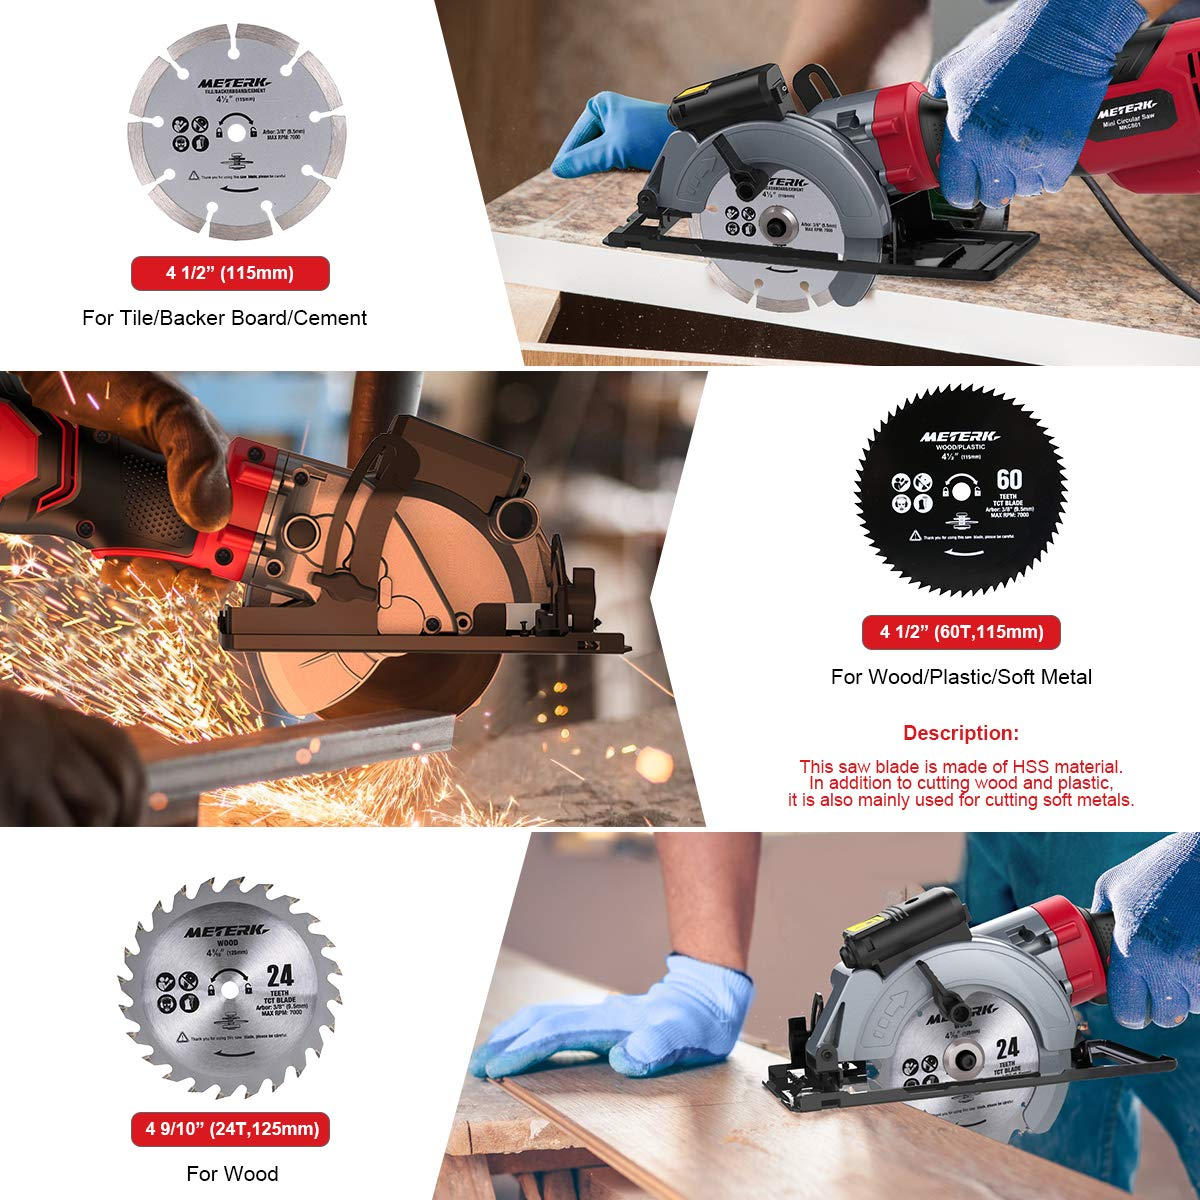 Circular Saw, Meterk 6.2A Compact Electric Circular Saw with Laser Guide, 6 Blades, Max Cutting Depth 1-9 10 90 , 1-1 4 0 -45 , Ideal for Wood, Soft Metal, Tile, and Plastic Cuts